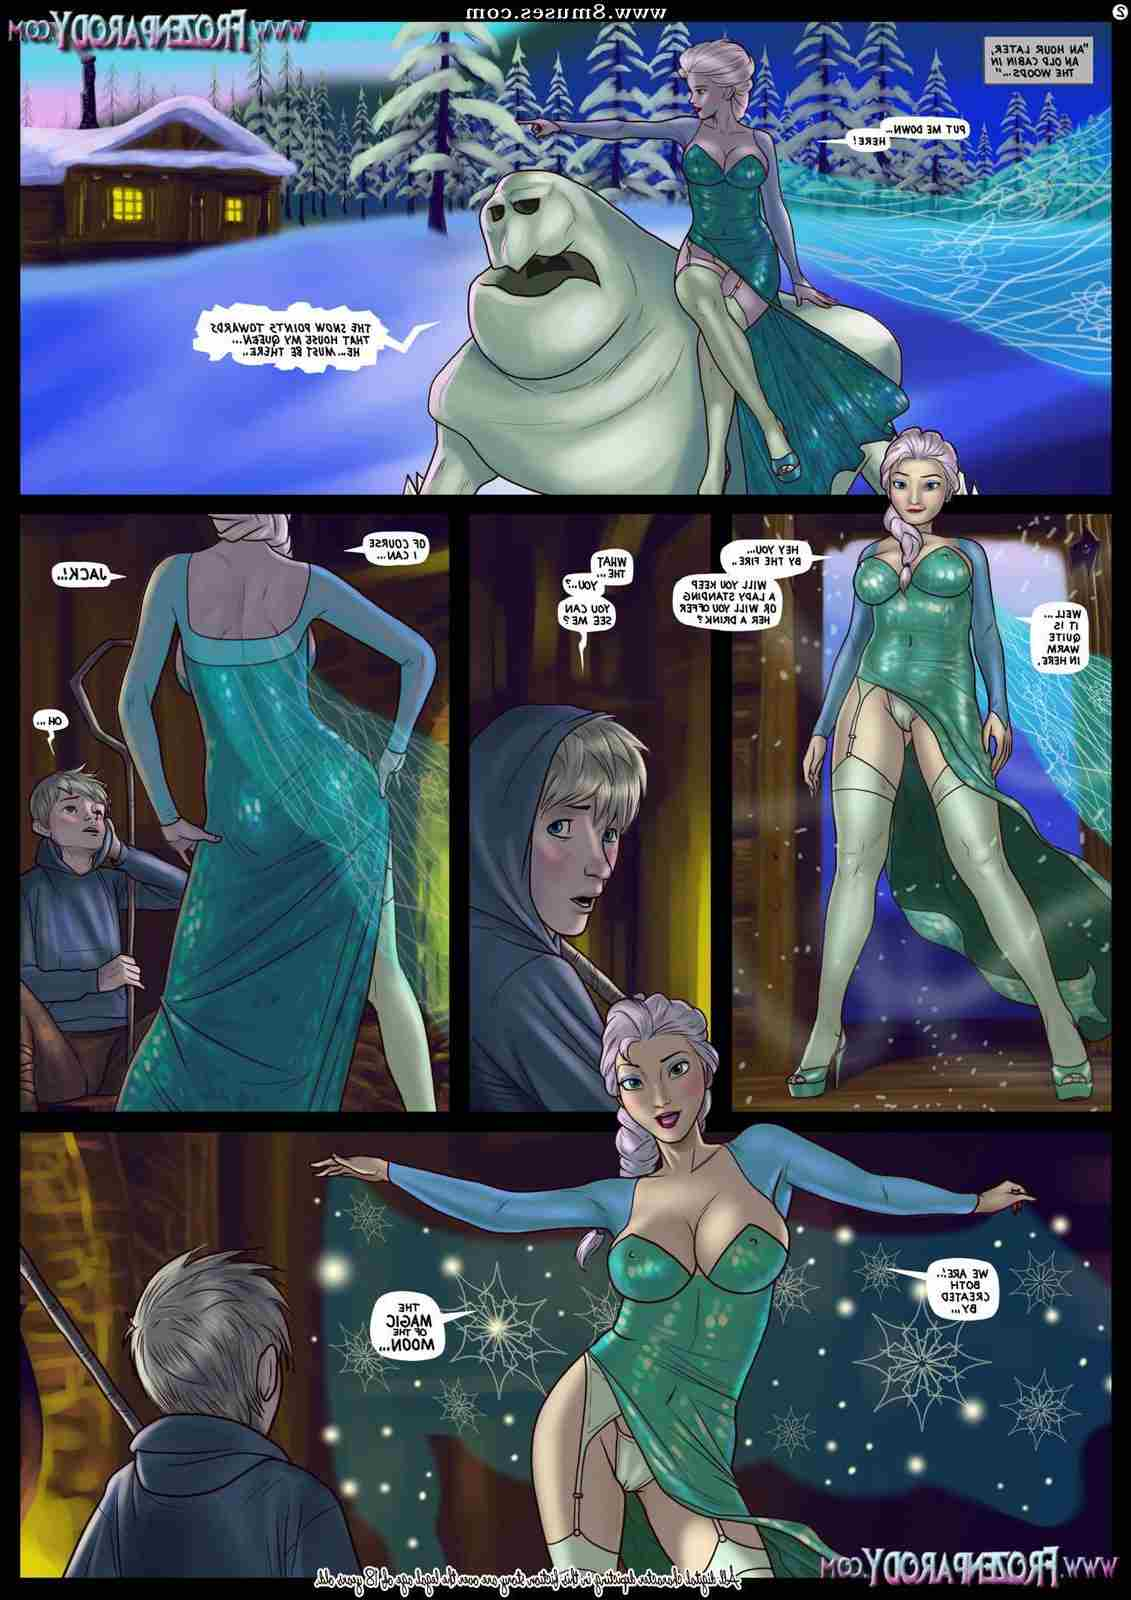 Frozen-Parody-Comics/Frozen-Parody-12-Elsa-Meet-Jack Frozen_Parody_12_-_Elsa_Meet_Jack__8muses_-_Sex_and_Porn_Comics_2.jpg